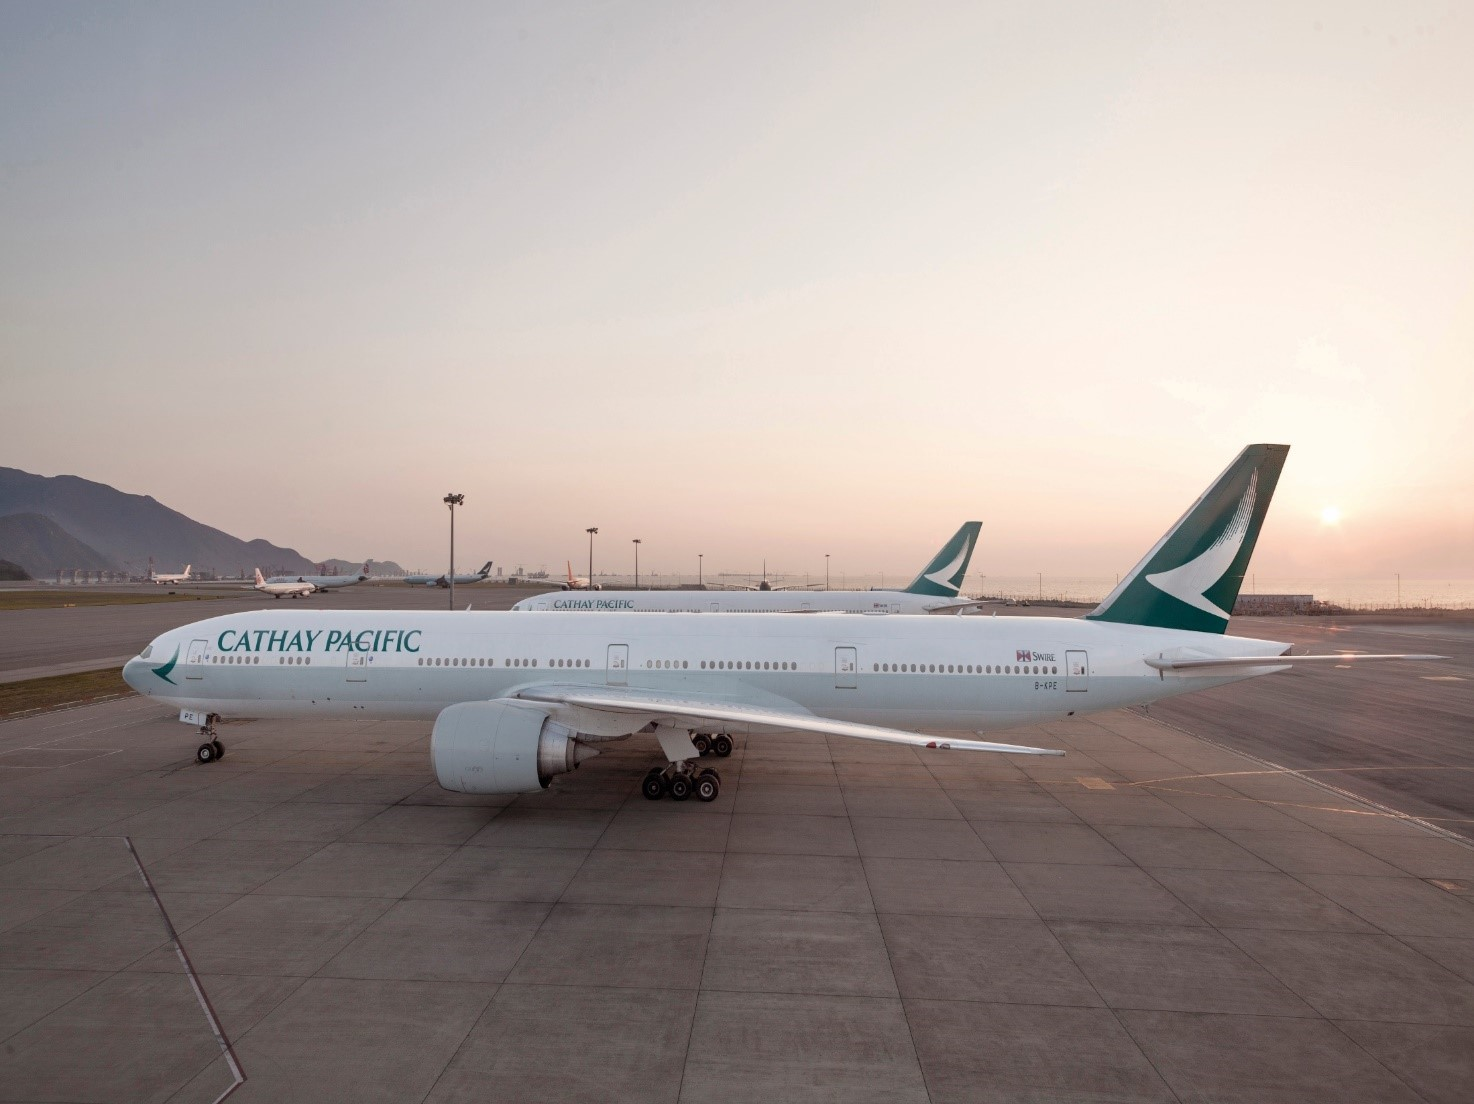 Cathay pacific celebrates 5 years of service in maldives maldives business review - Cathay pacific head office ...